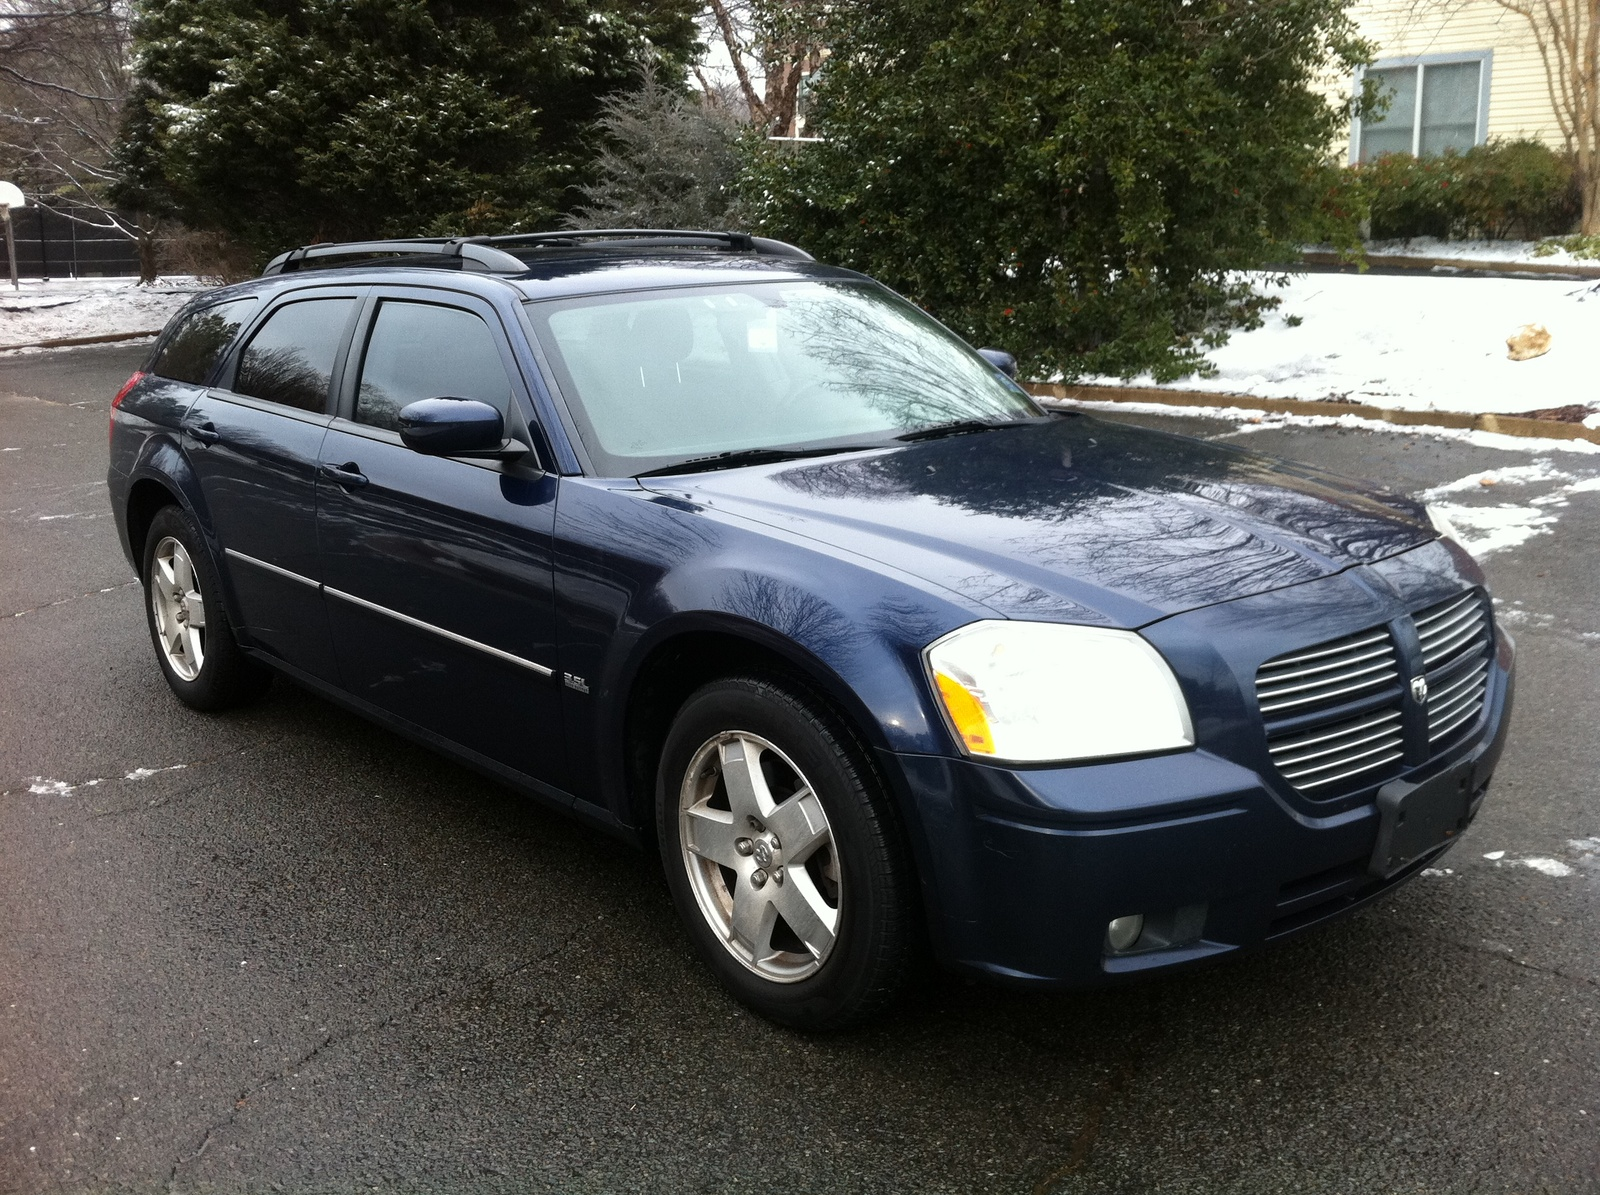 2006 Dodge Magnum SXT AWD - Pictures - Picture of 2006 Dodge Magnum S ...